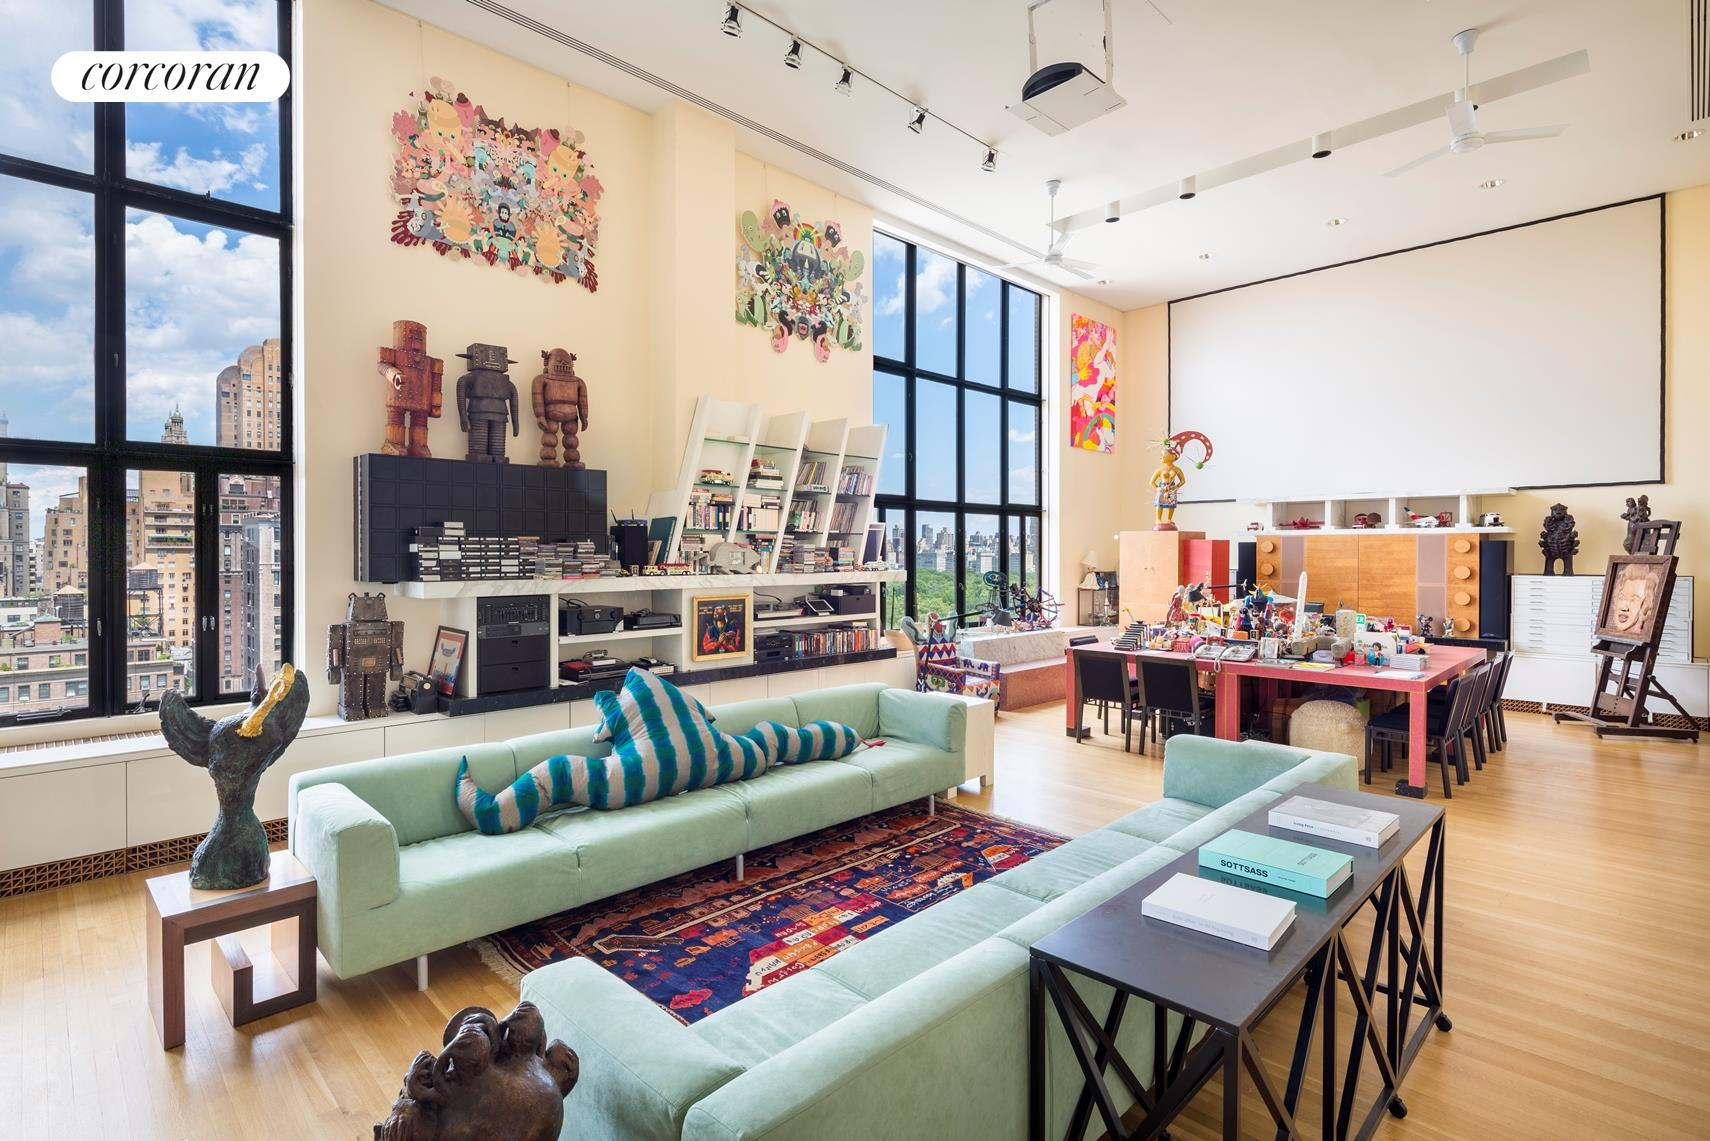 Co-op for Sale at Hotel des Artistes, 1 West 67th Street Ph905 1 West 67th Street New York, New York 10023 United States